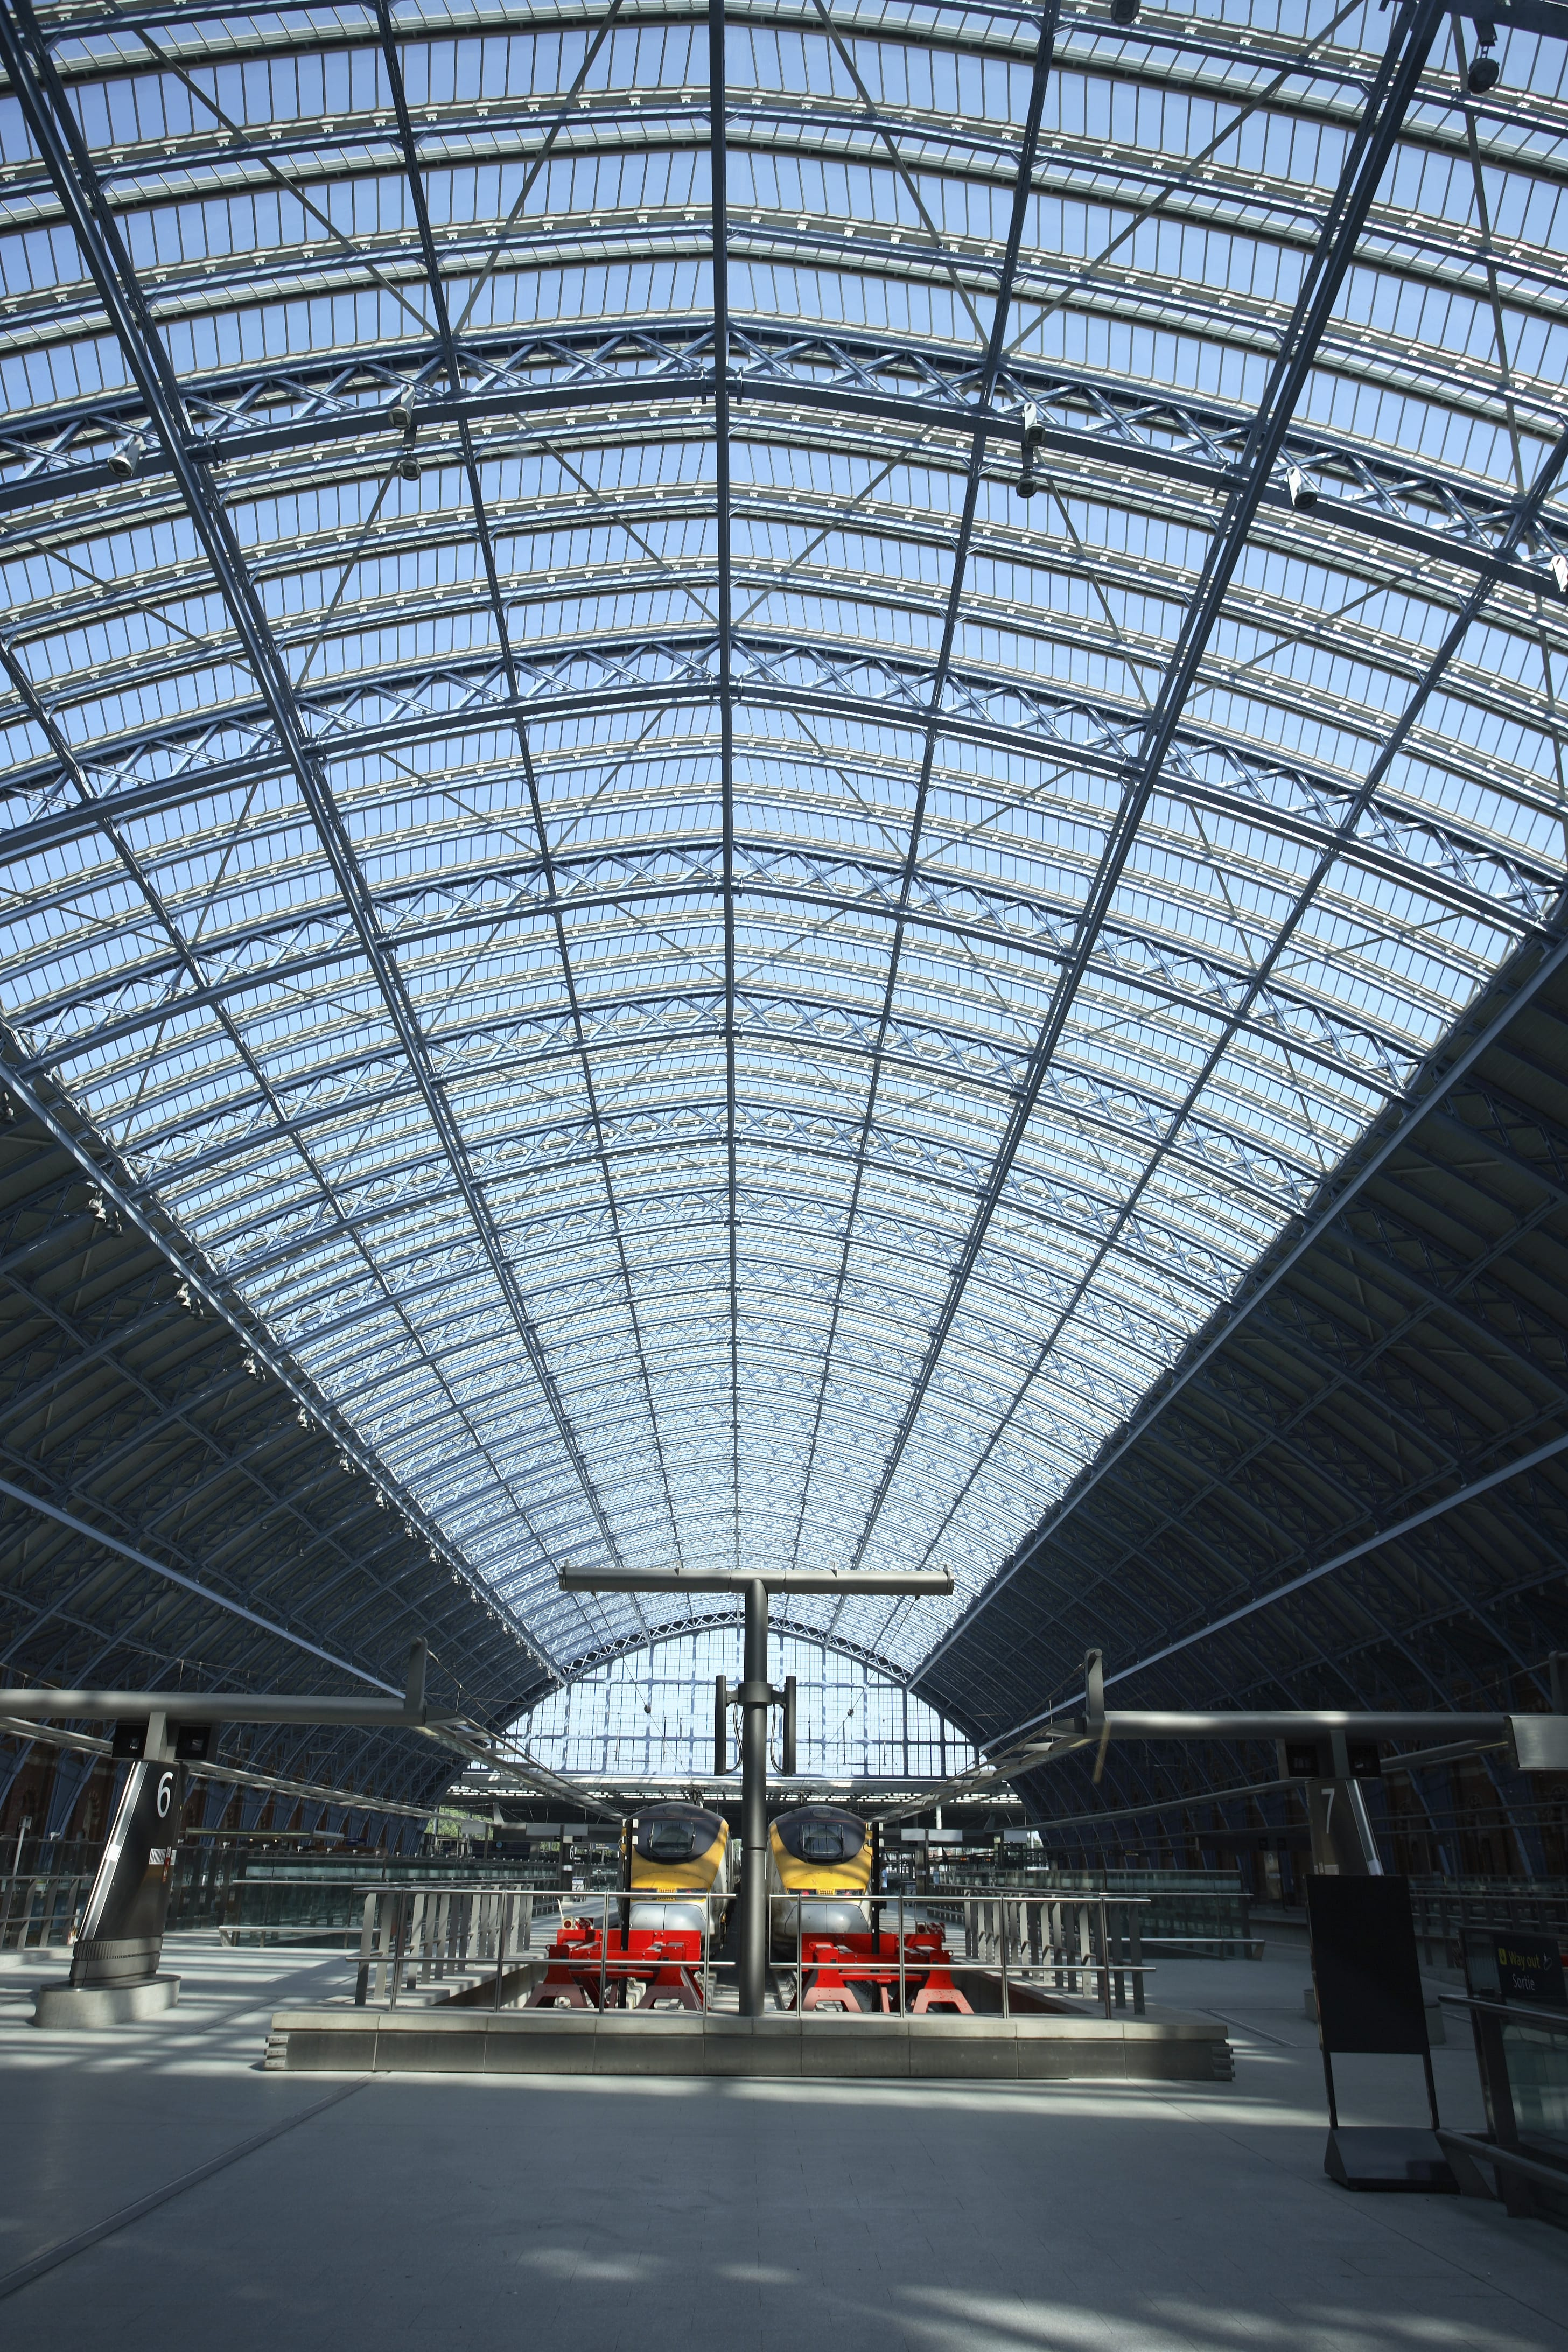 St Pancras train station platform